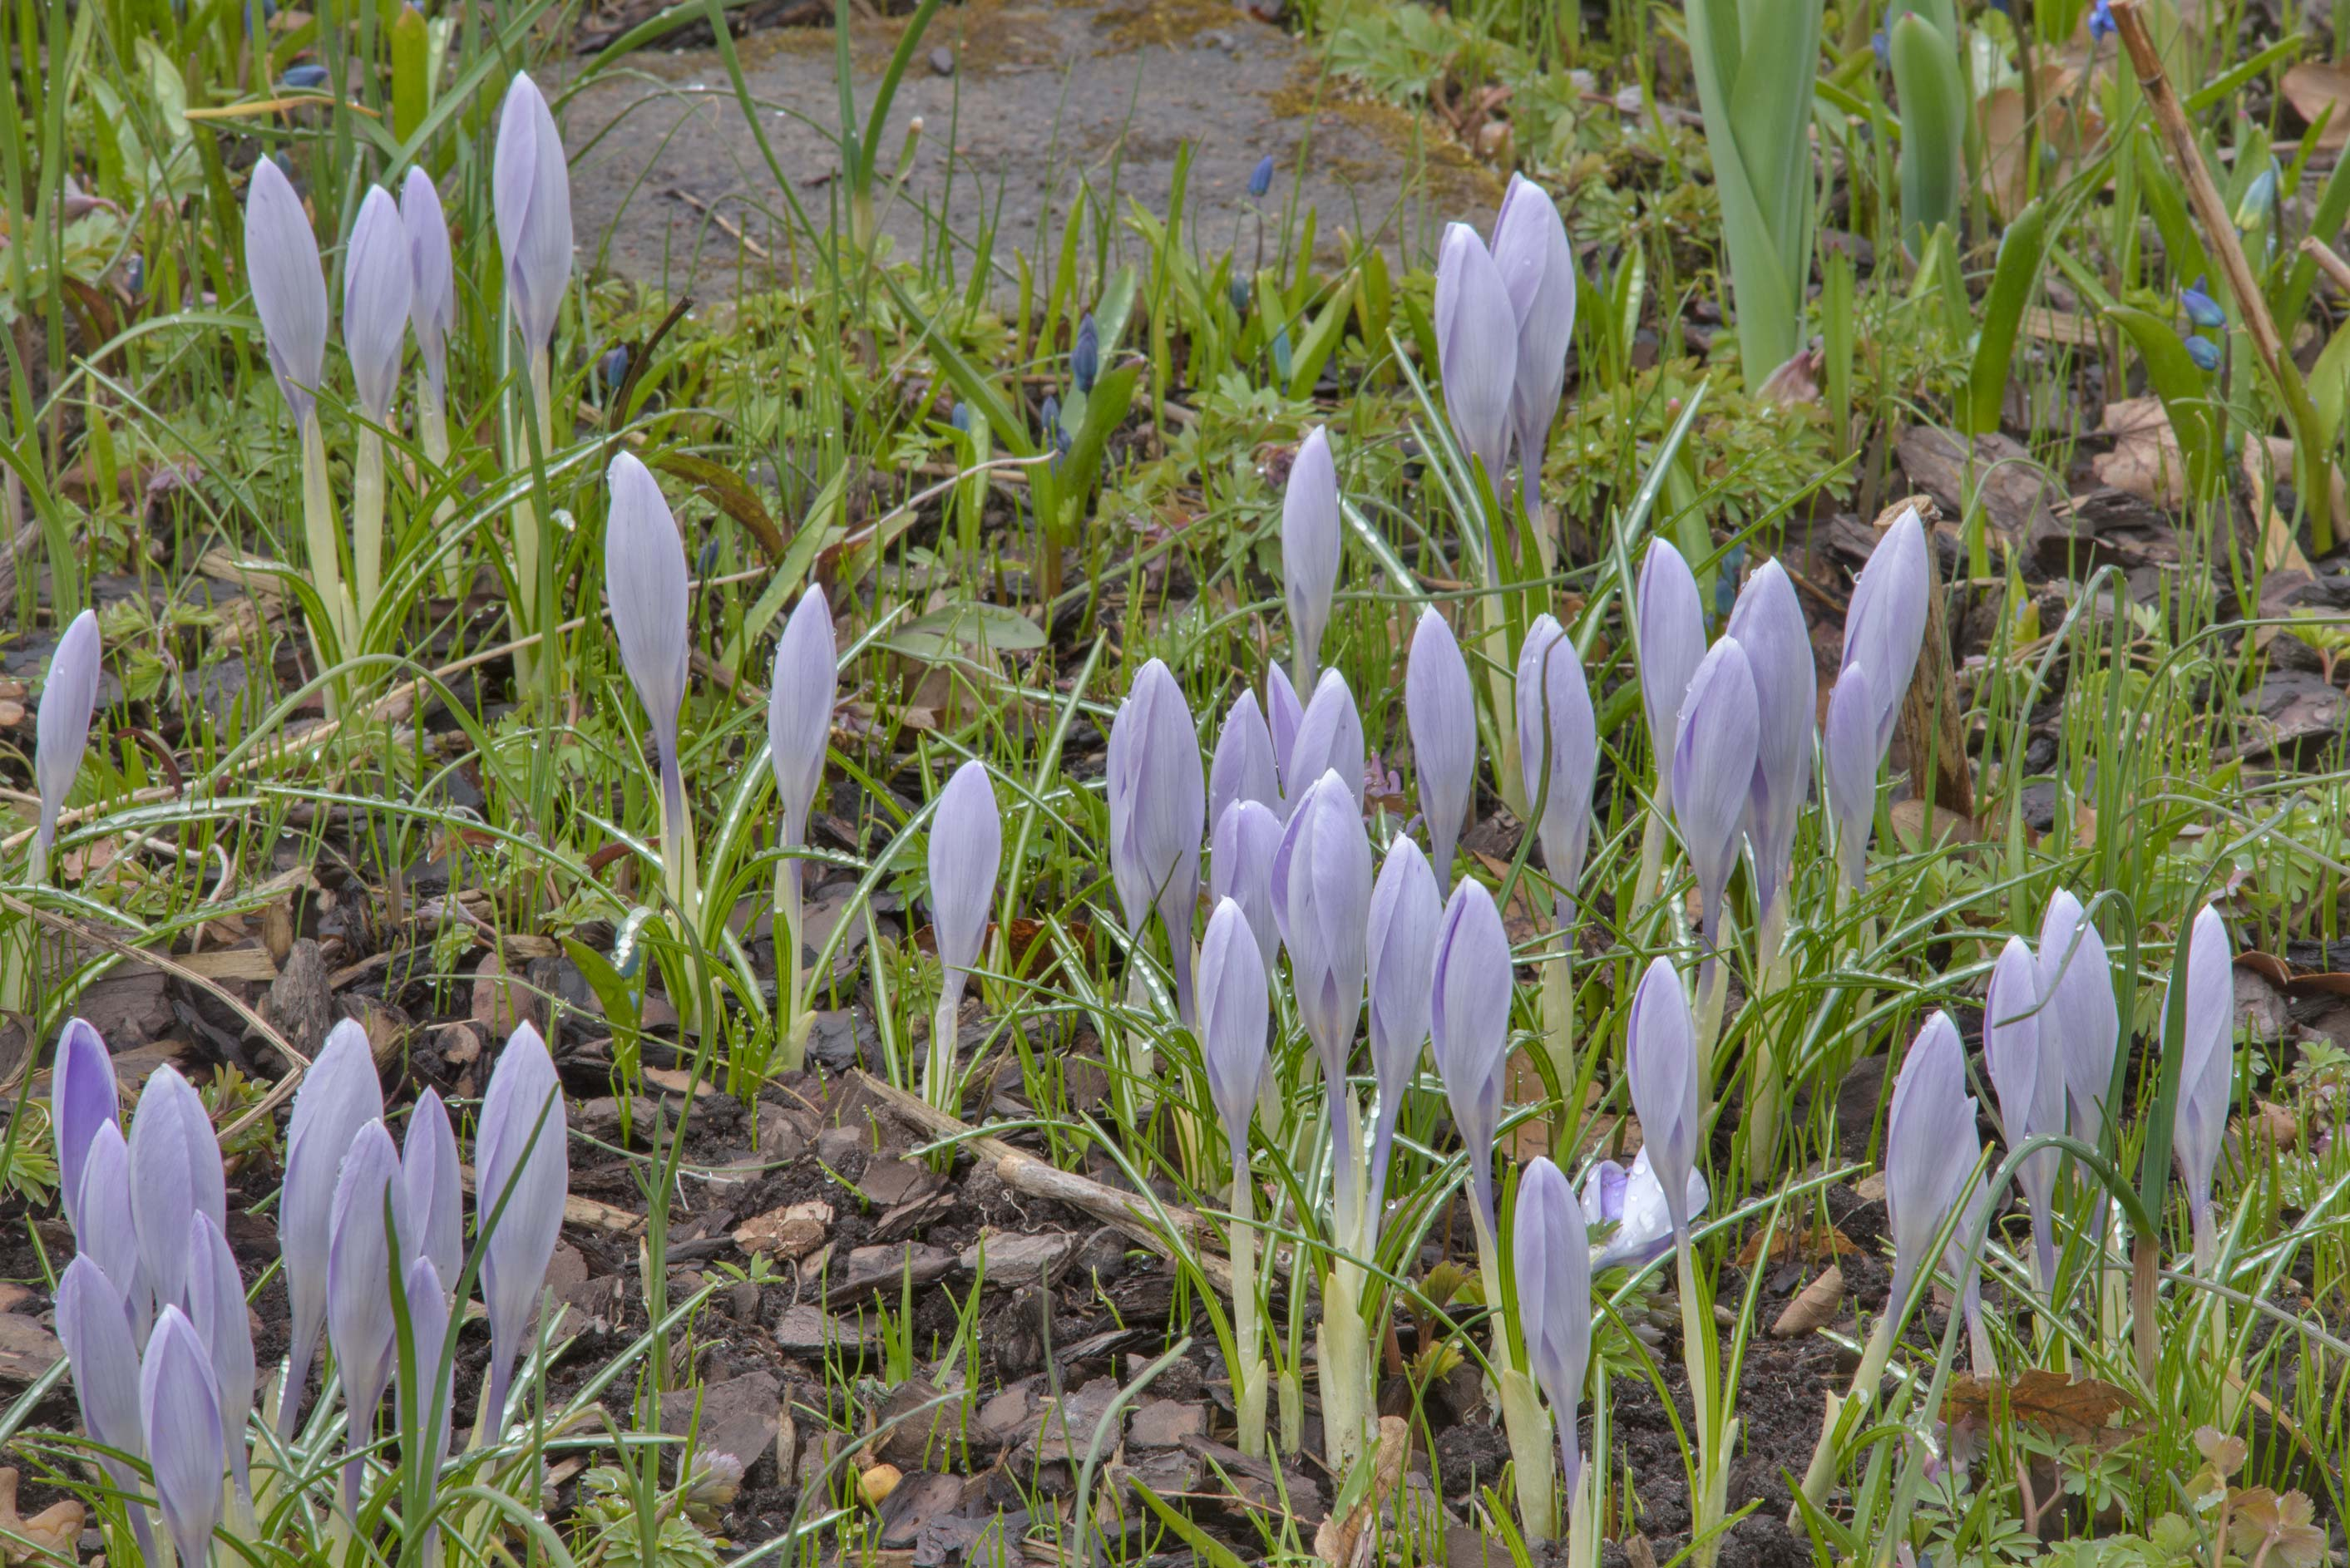 Blue crocus flowers in Botanic Gardens of Komarov...Institute. St.Petersburg, Russia